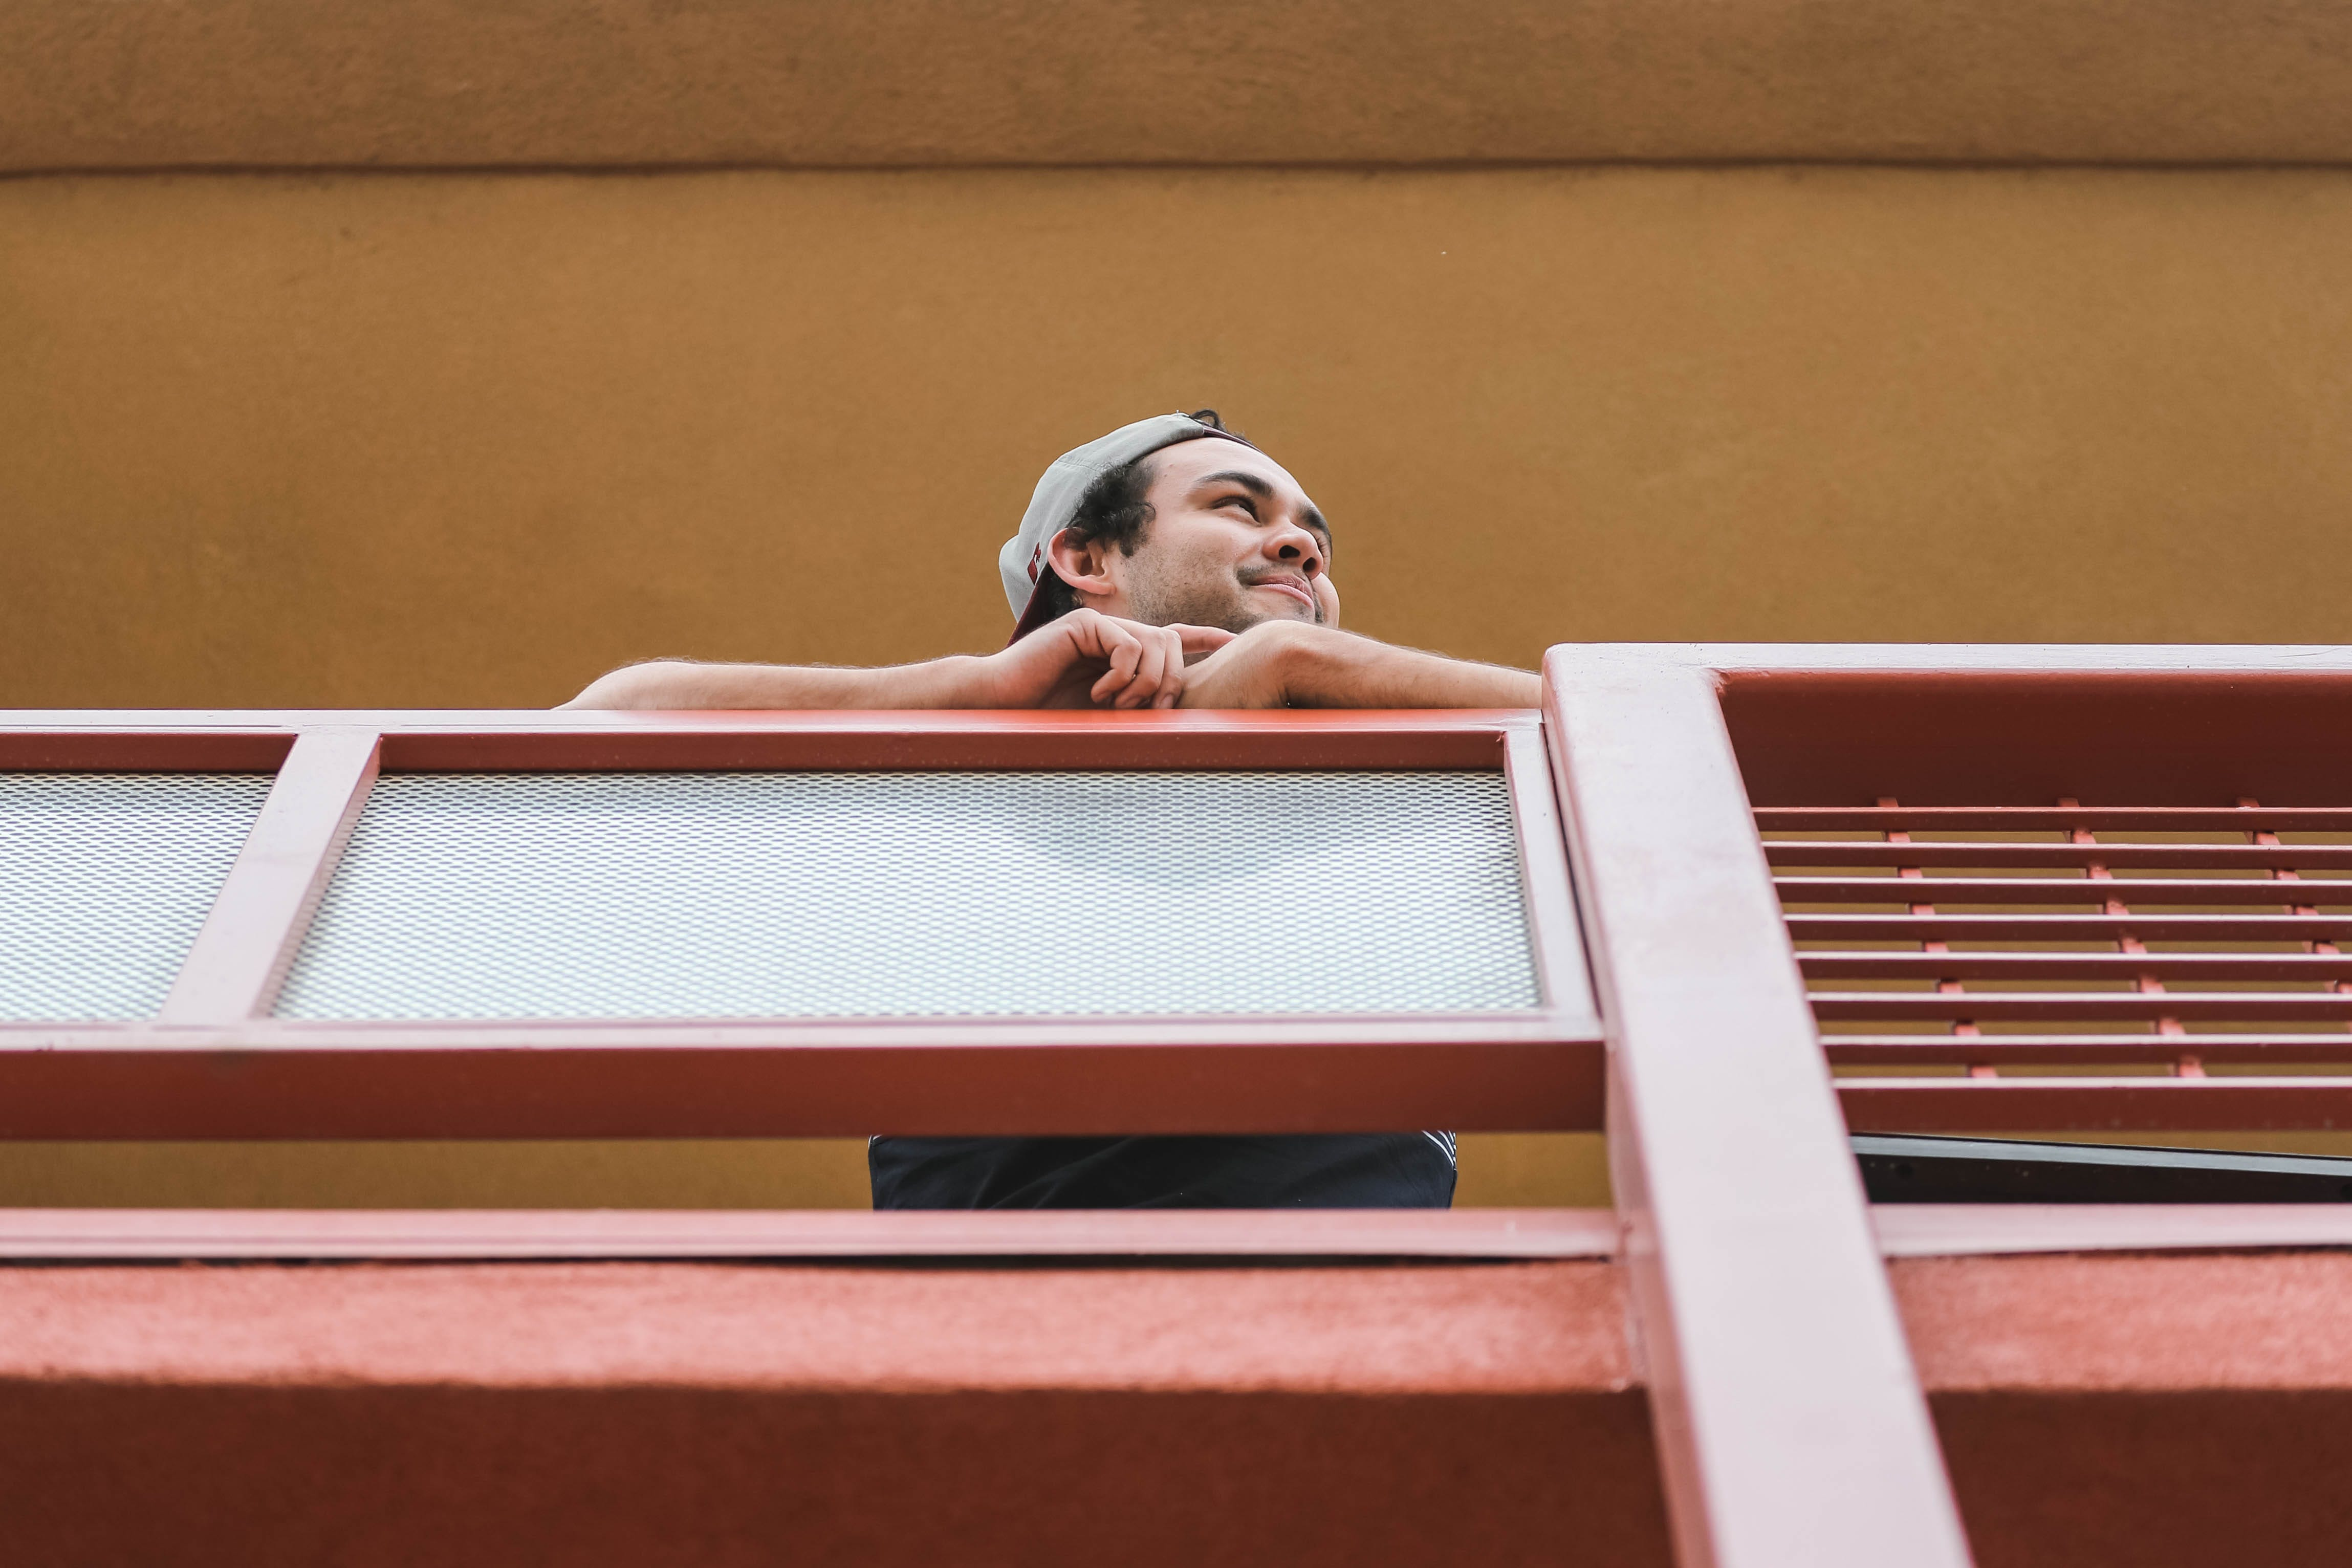 New Mexico State international student Daniel Barrio stands out on his apartment balcony on Thursday, March 26, 2020, during what would have been class hours before school was canceled due to Coronavirus concerns in Las Cruces.